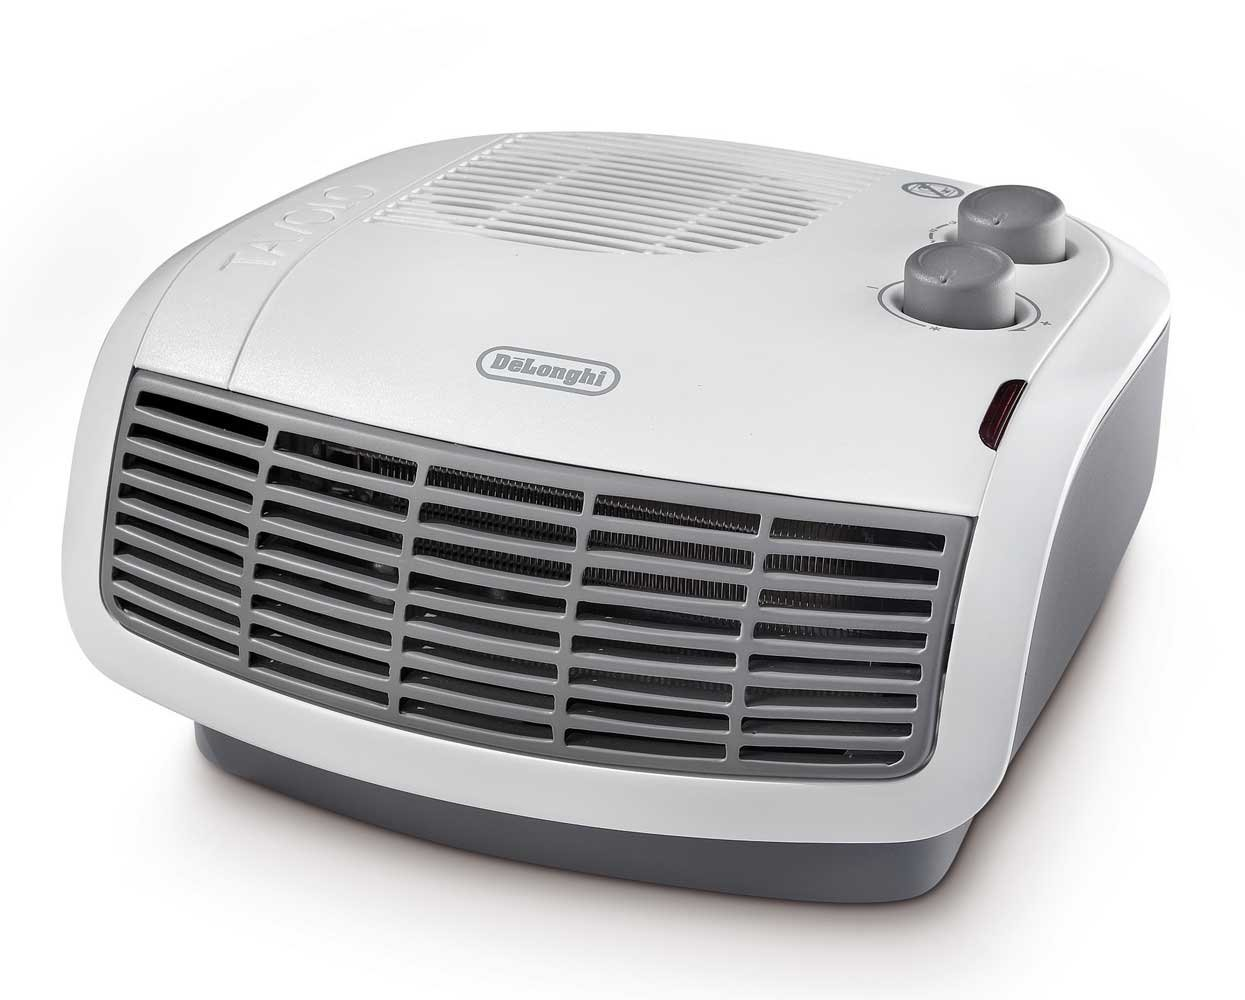 De'longhi HTF3033 Horizontal Fan Heater, 3 KW - White/Grey (Certified Refurbished) Delonghi